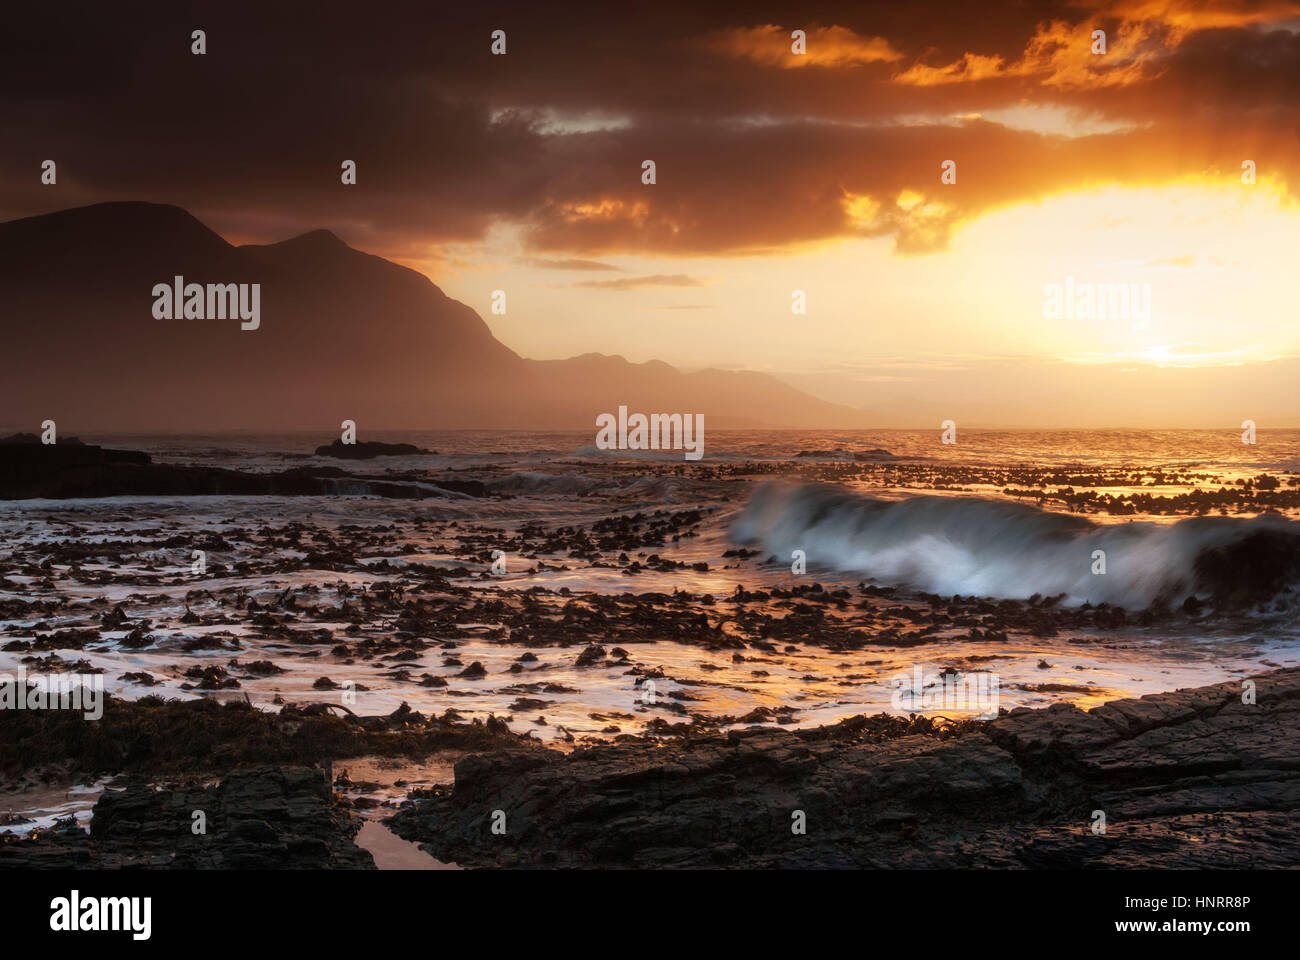 Hermanus, South Africa - Large waves wash kelp ashore at sunset in Western Cape - Stock Image